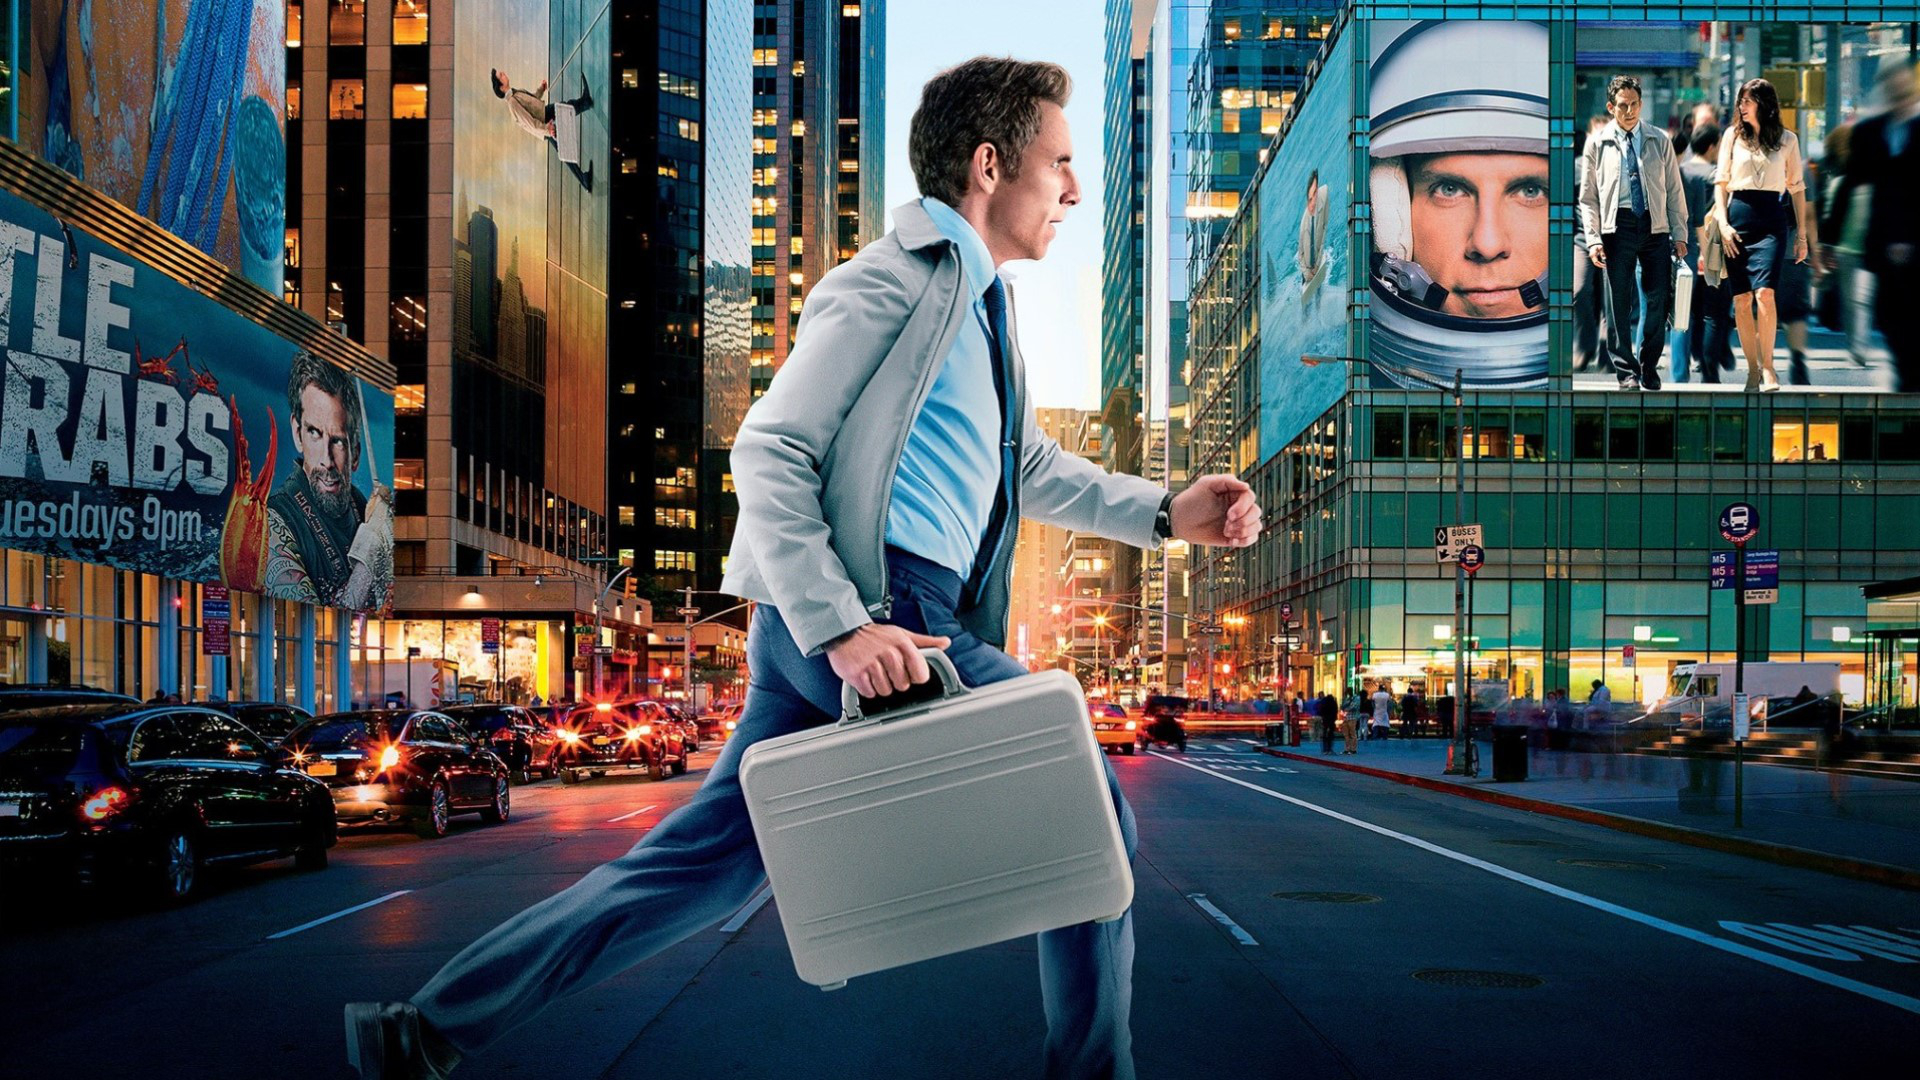 Anonymous Hd Wallpaper 1366x768 The Secret Life Of Walter Mitty Hd Wallpaper Background